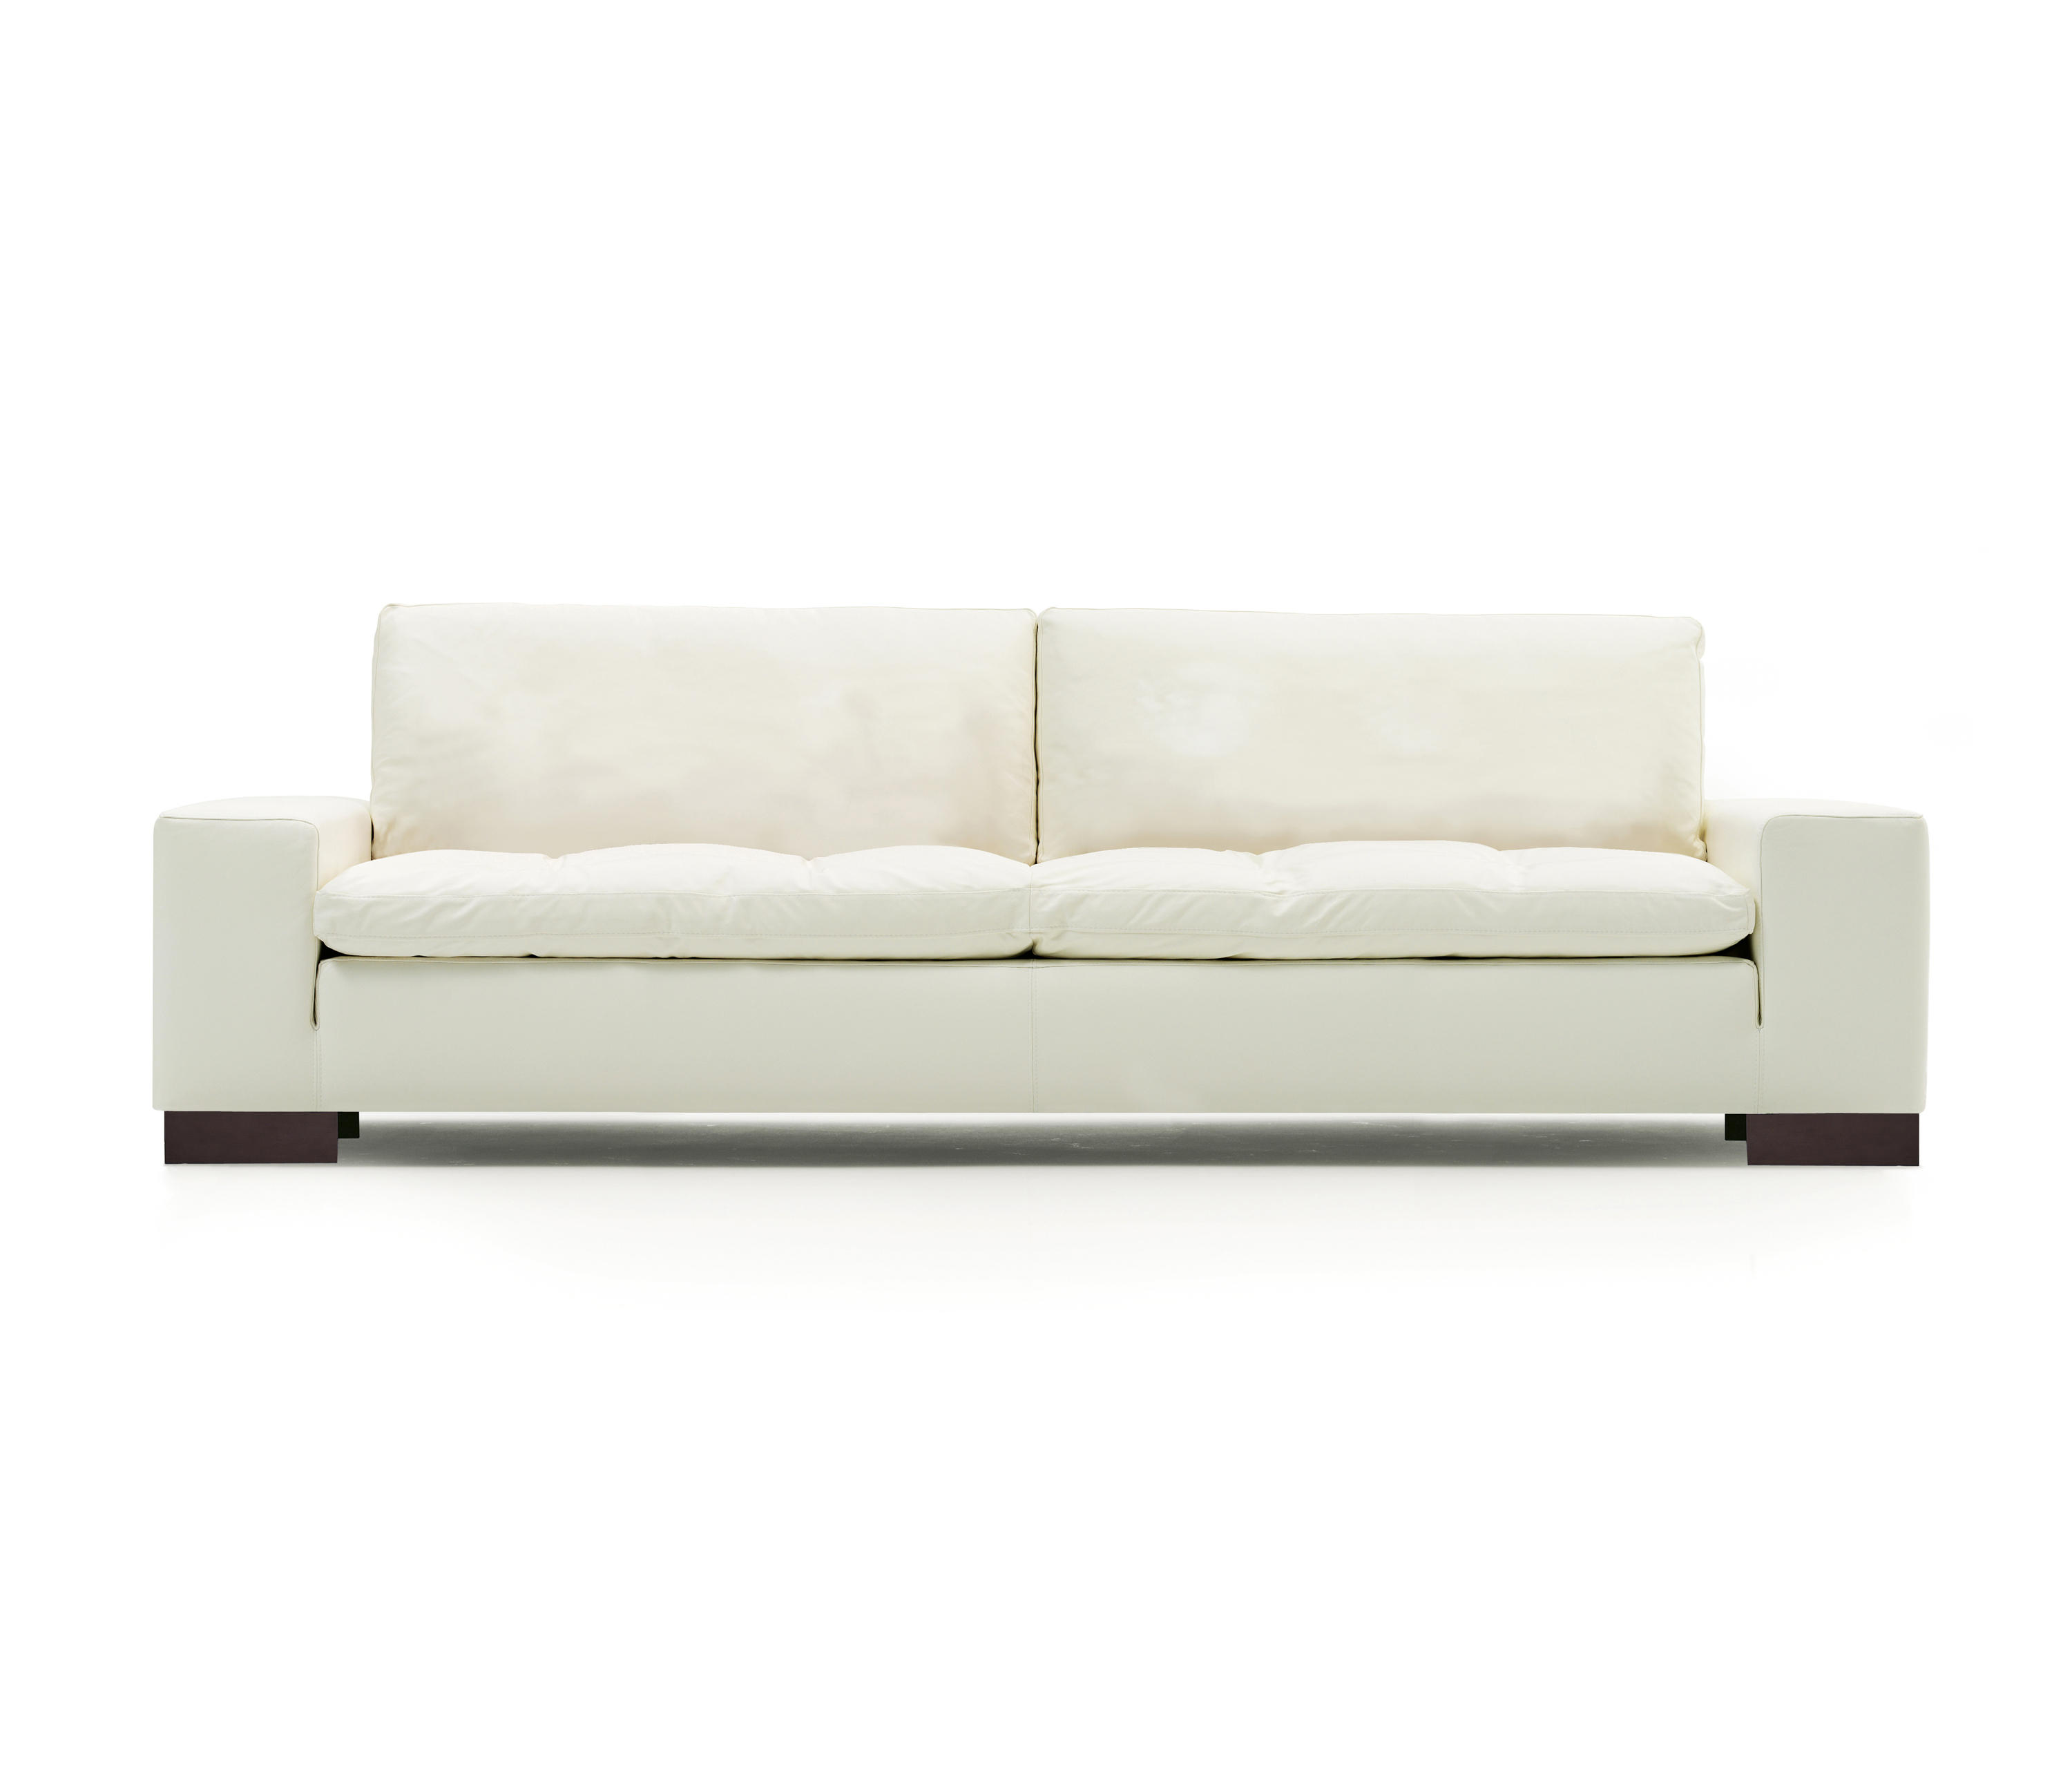 jazz sofa review best sofas for small apartments danish design thesofa